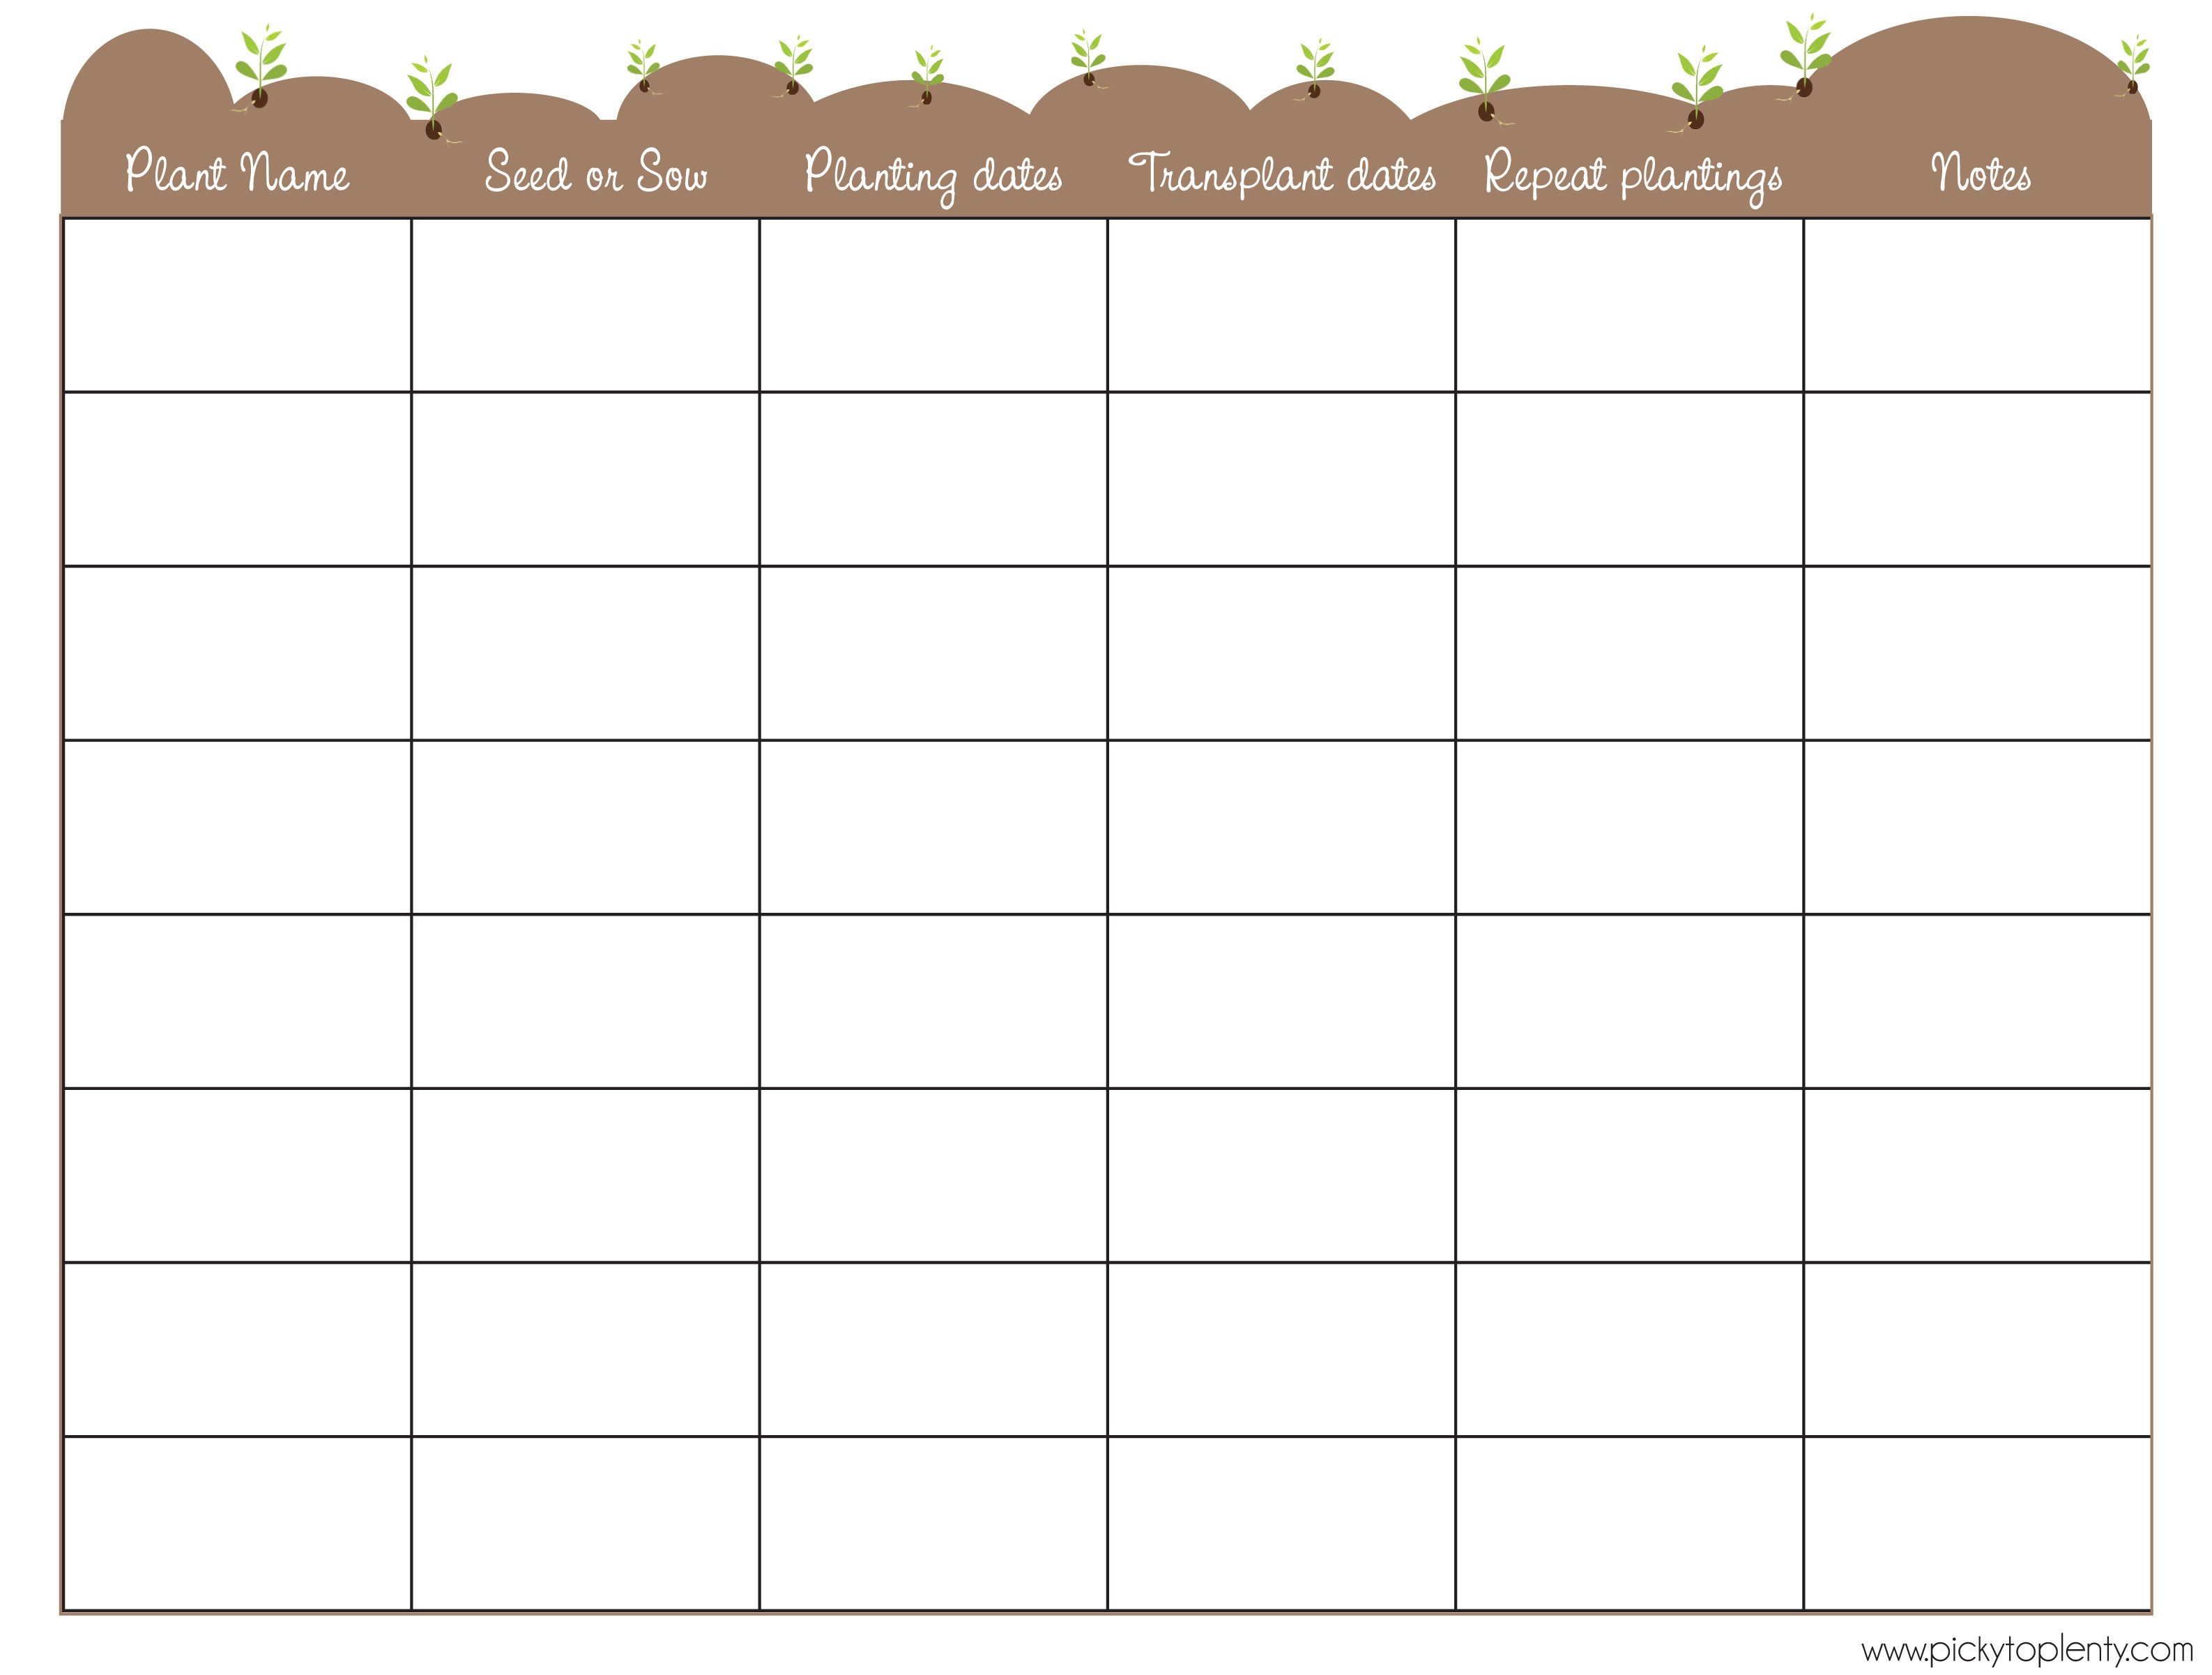 garden planner template click on the thumbnail to download my seed planner template garden planning calendar image collections home fixtures rYRUwD